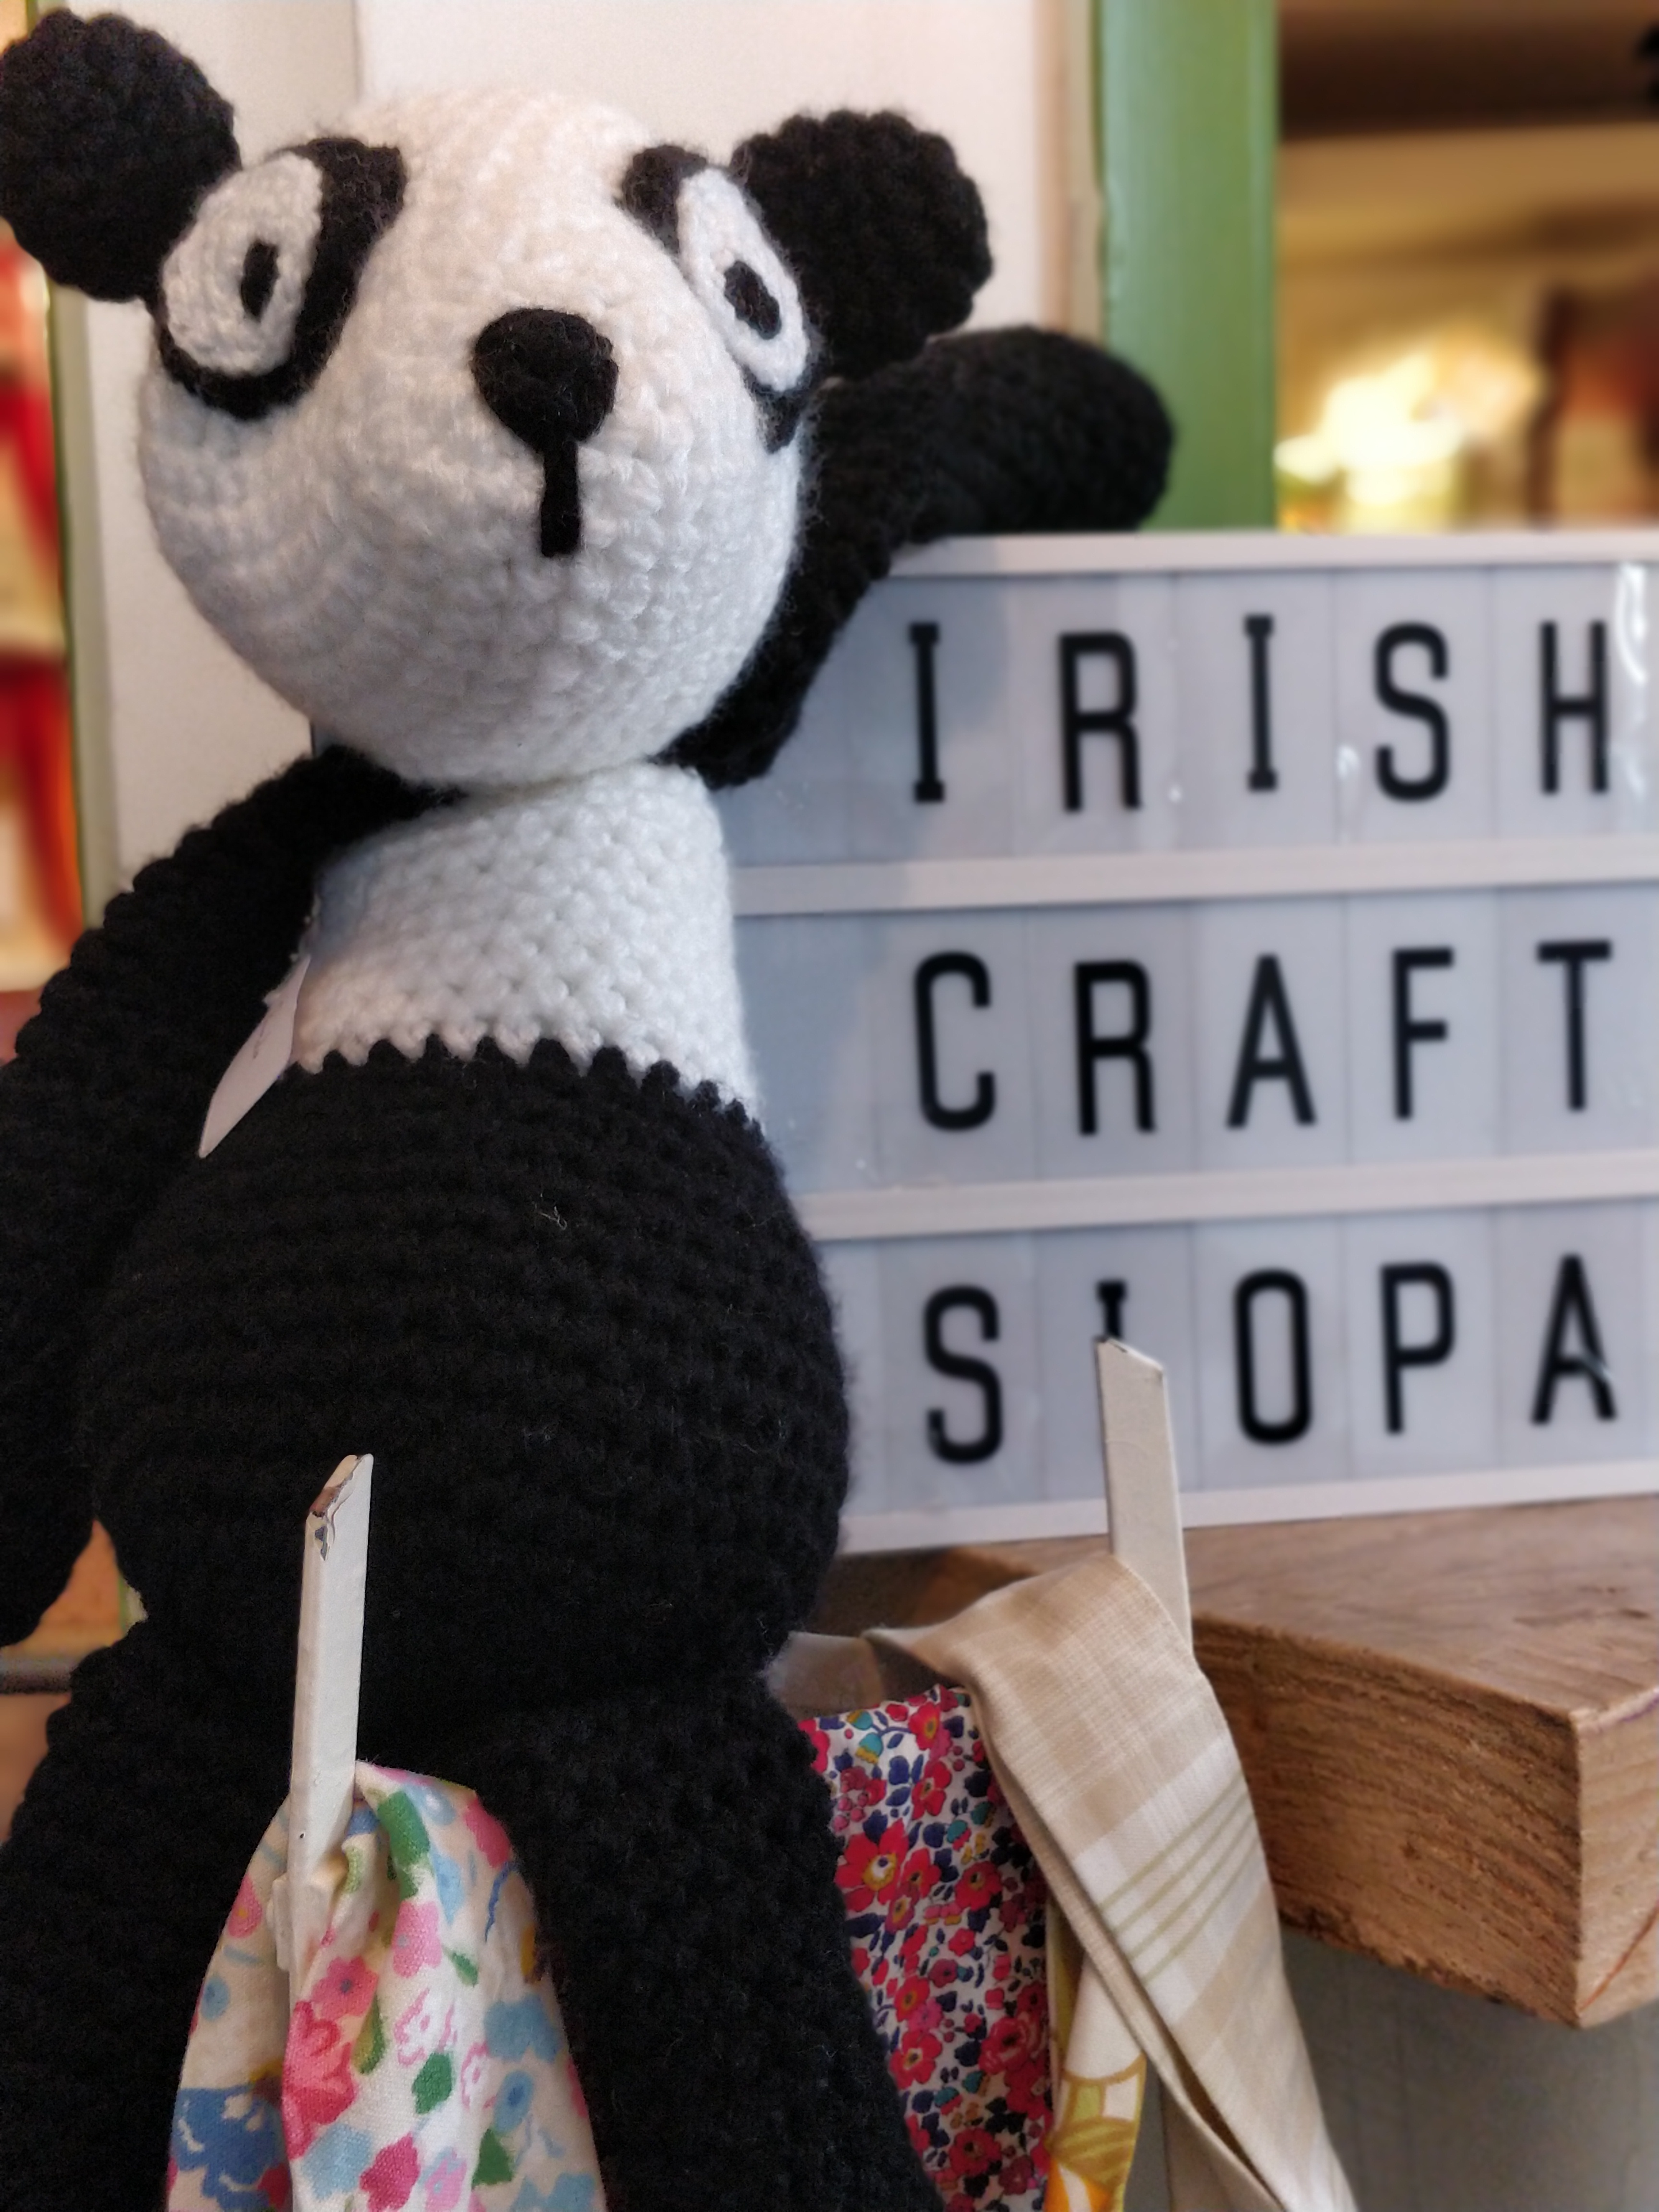 Irish Craft Siopa Meet The Maker Small Changes